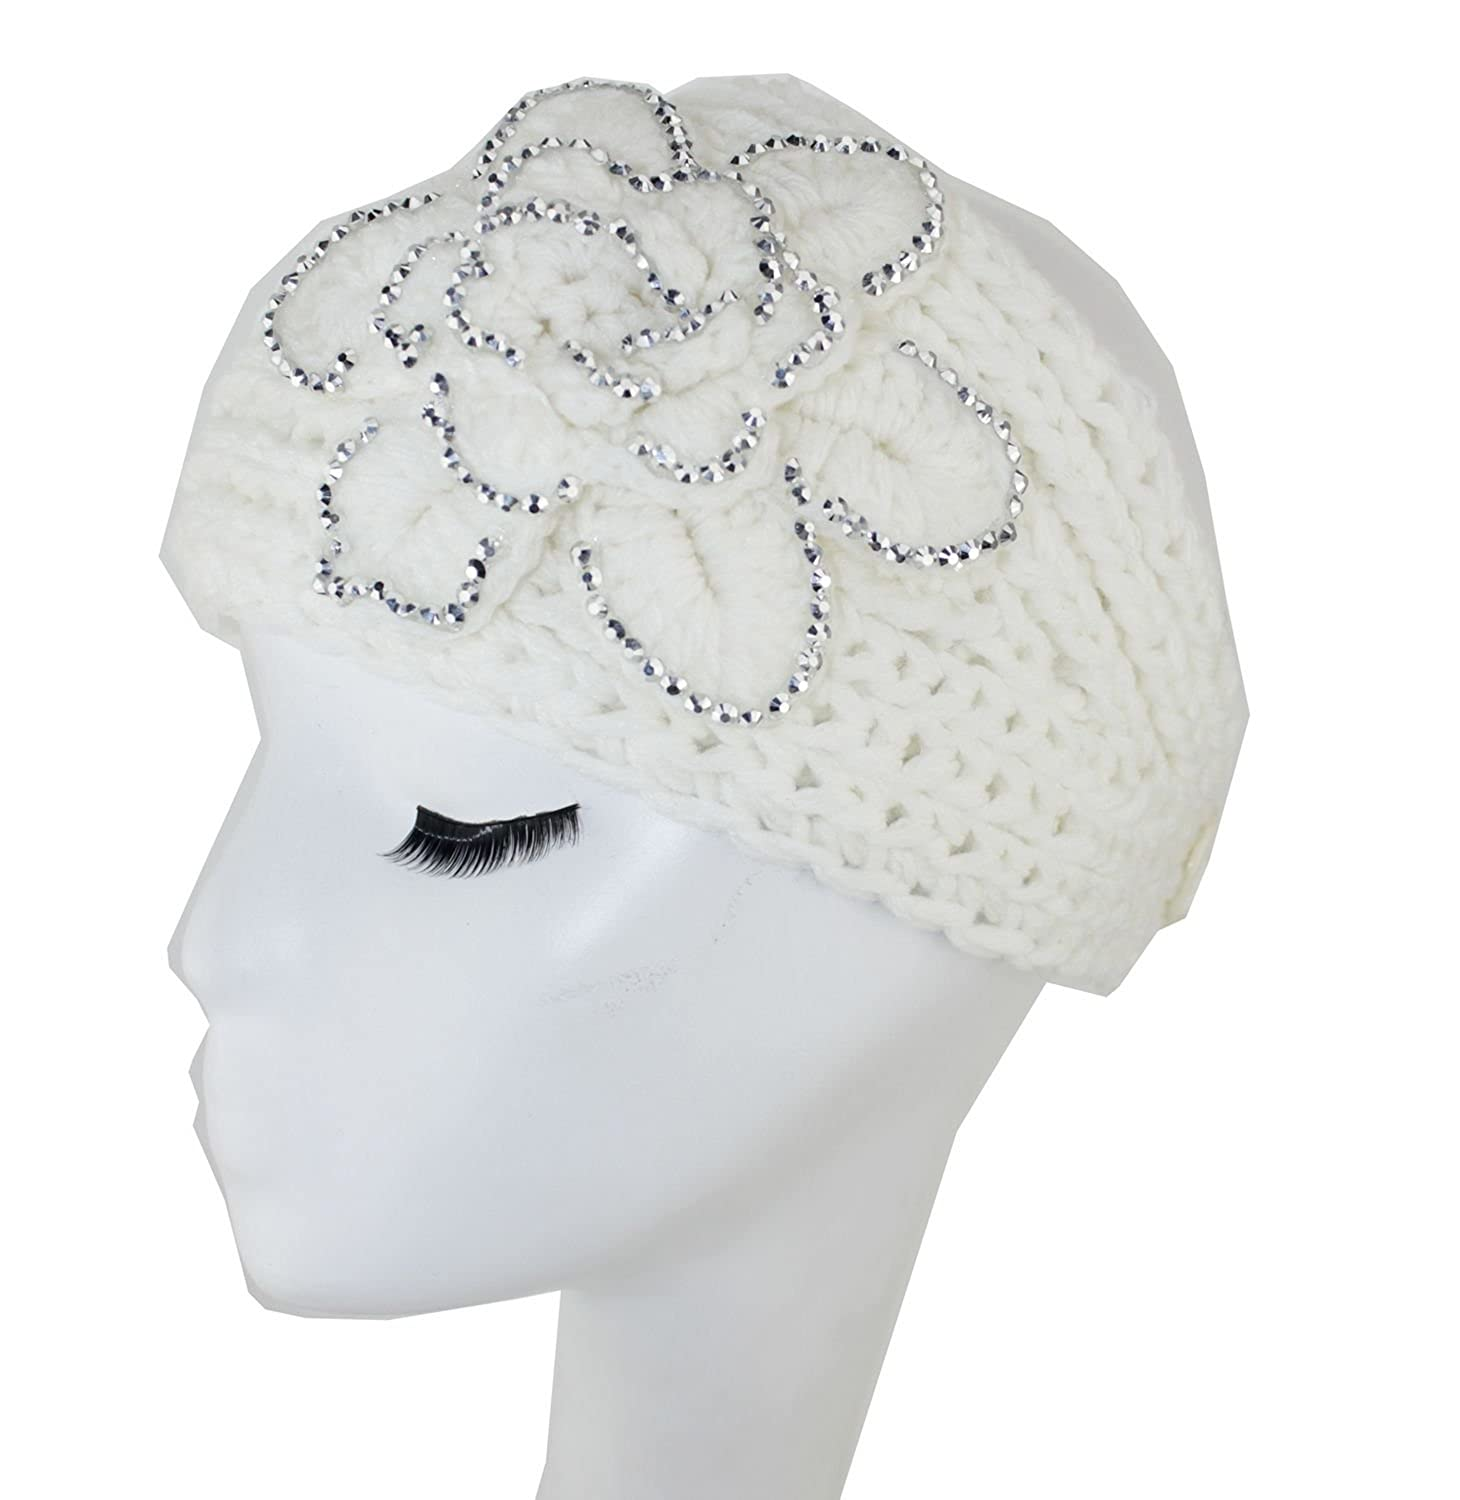 Wiipu Crochet Flower Headband Ear Warmer Winter Knit with Rhinestone (N75)beige